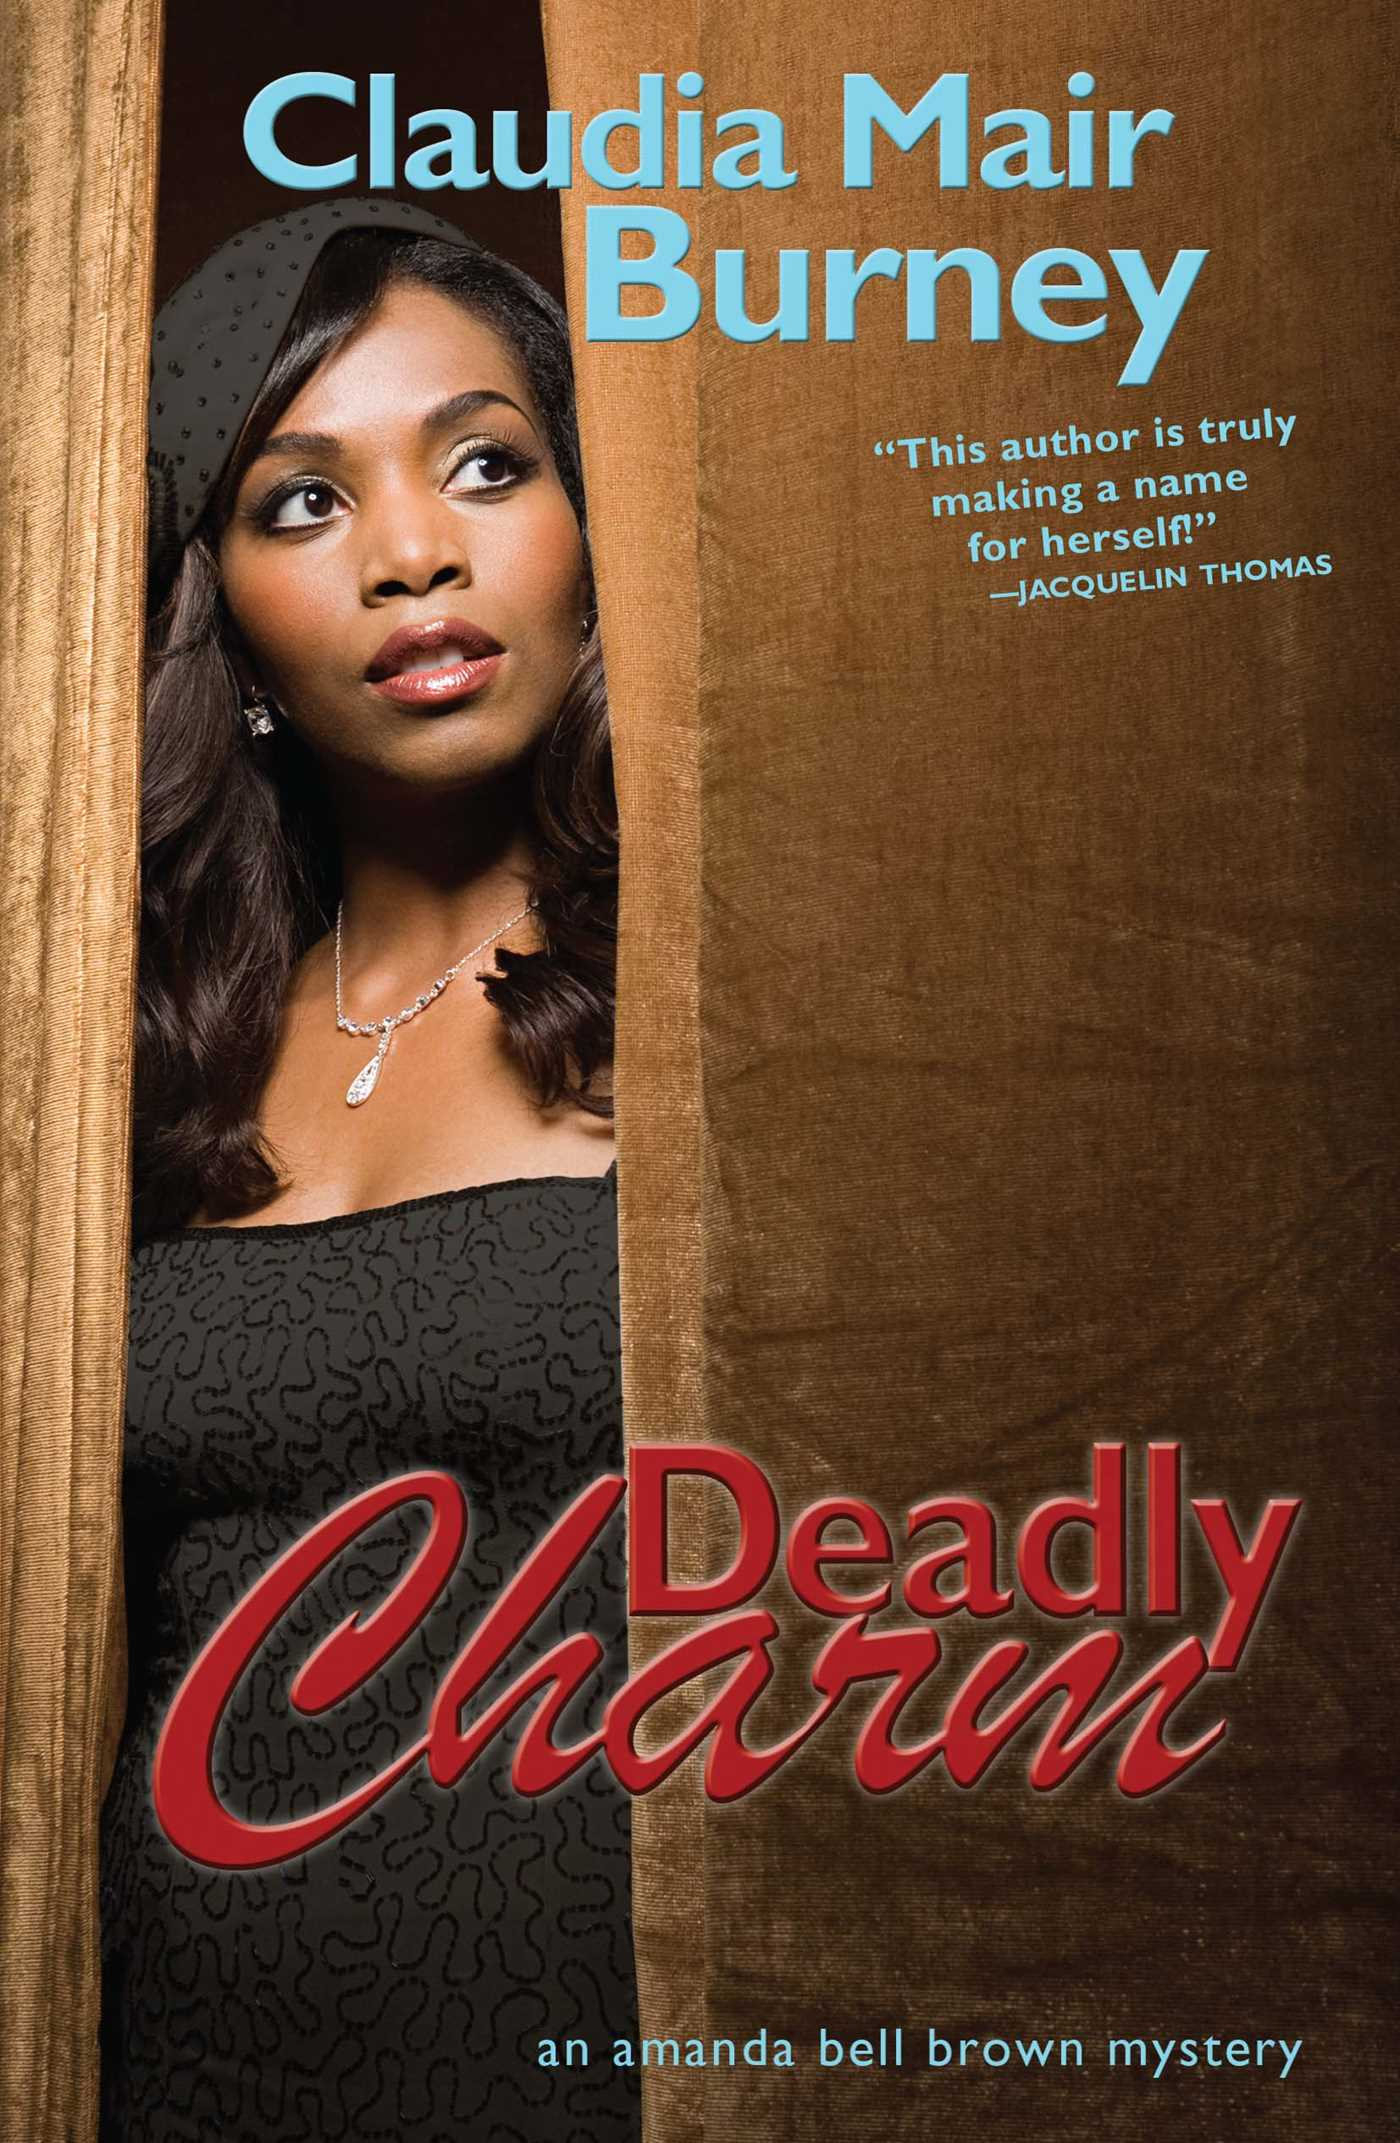 Deadly charm 9781416551959 hr